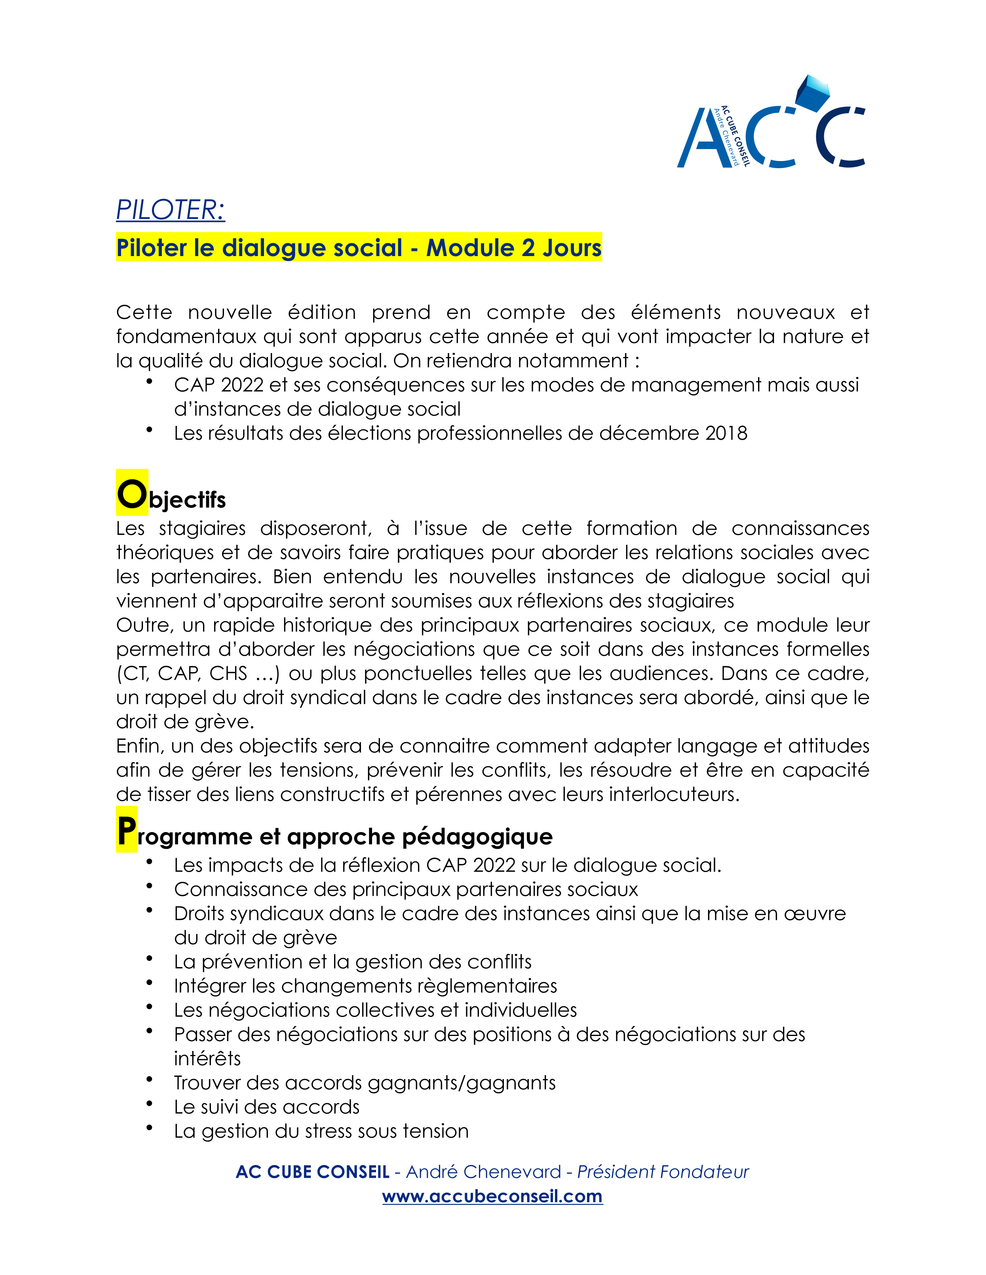 AC CUBE CONSEIL - PILOTER_Page_2.png